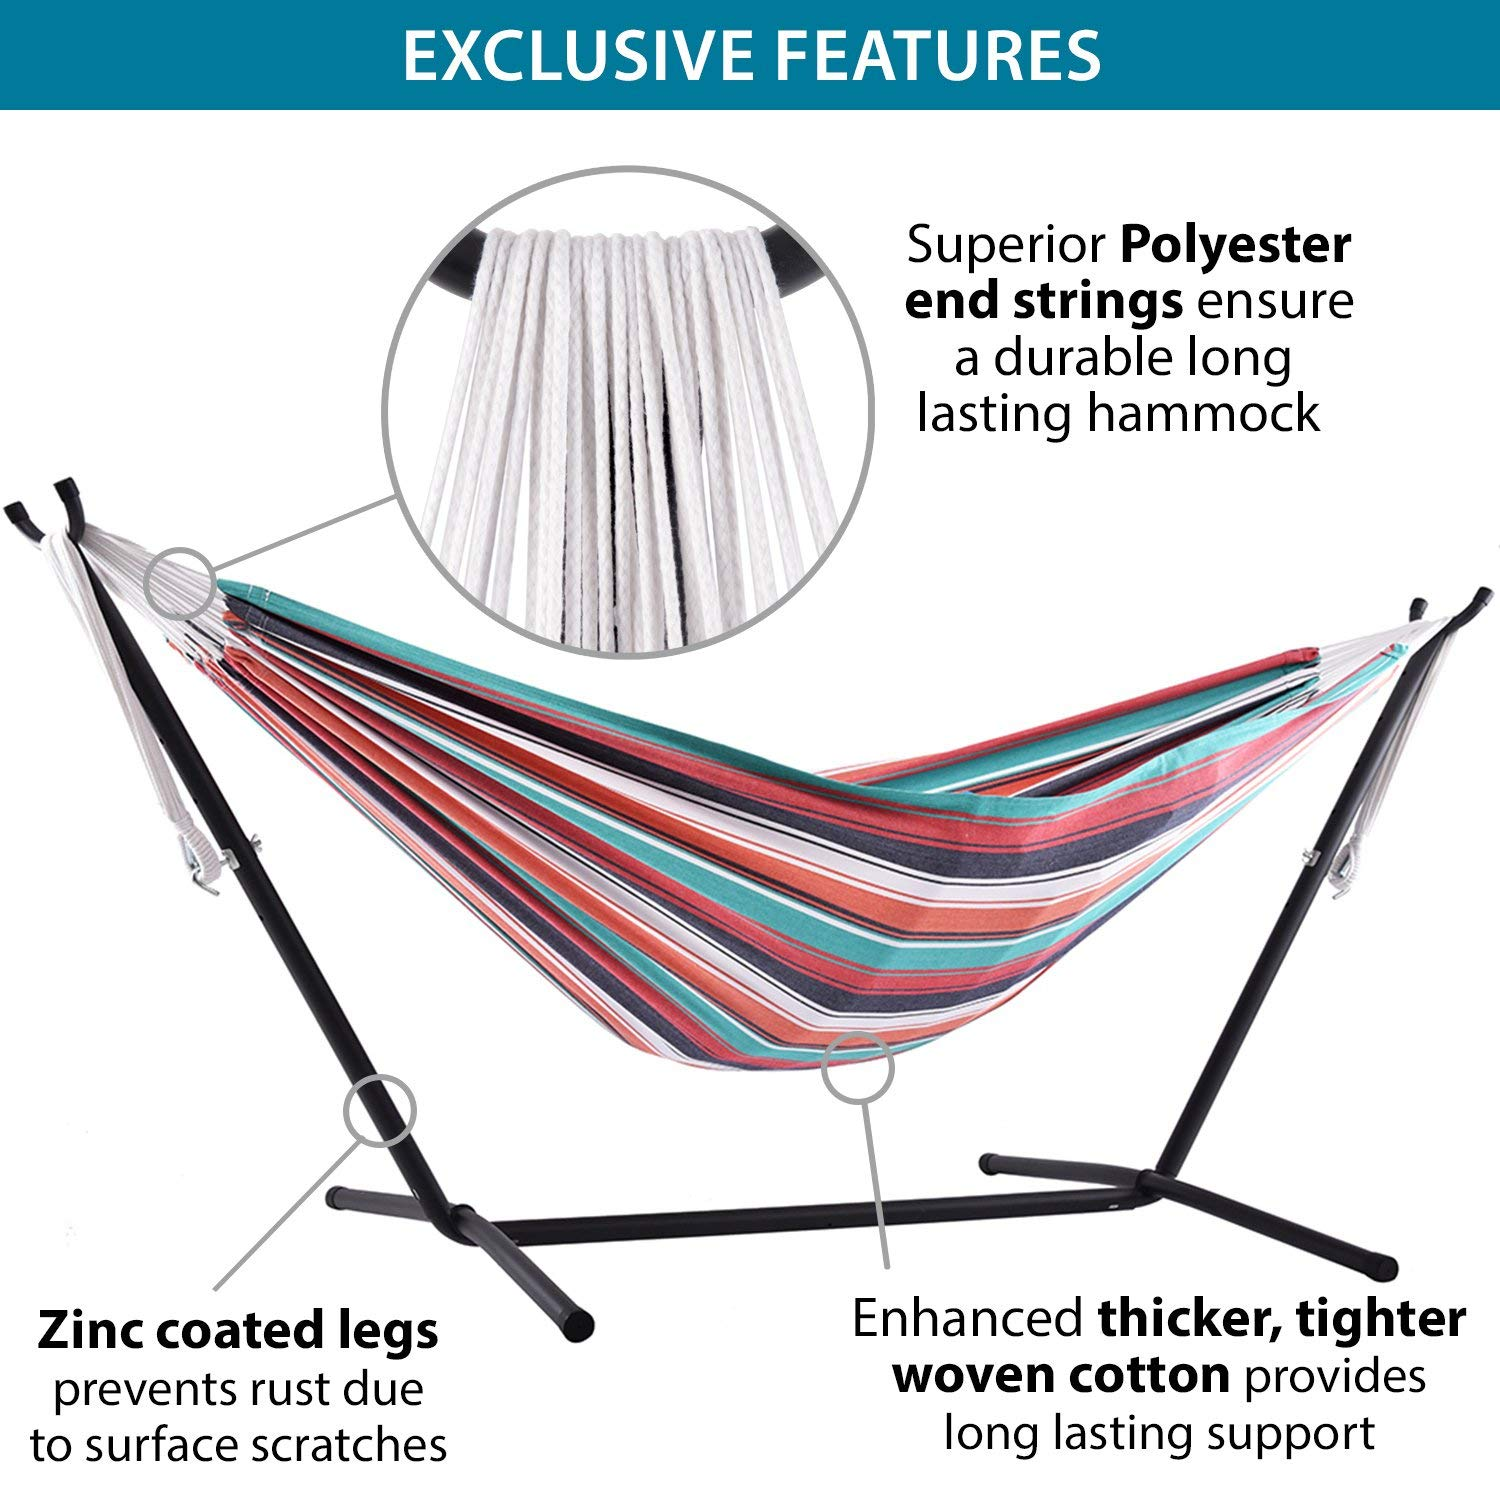 Vivere Double Cotton Hammock with Space Saving Steel Stand, Plumeria 450 lb Capacity – Premium Carry Bag Included Renewed